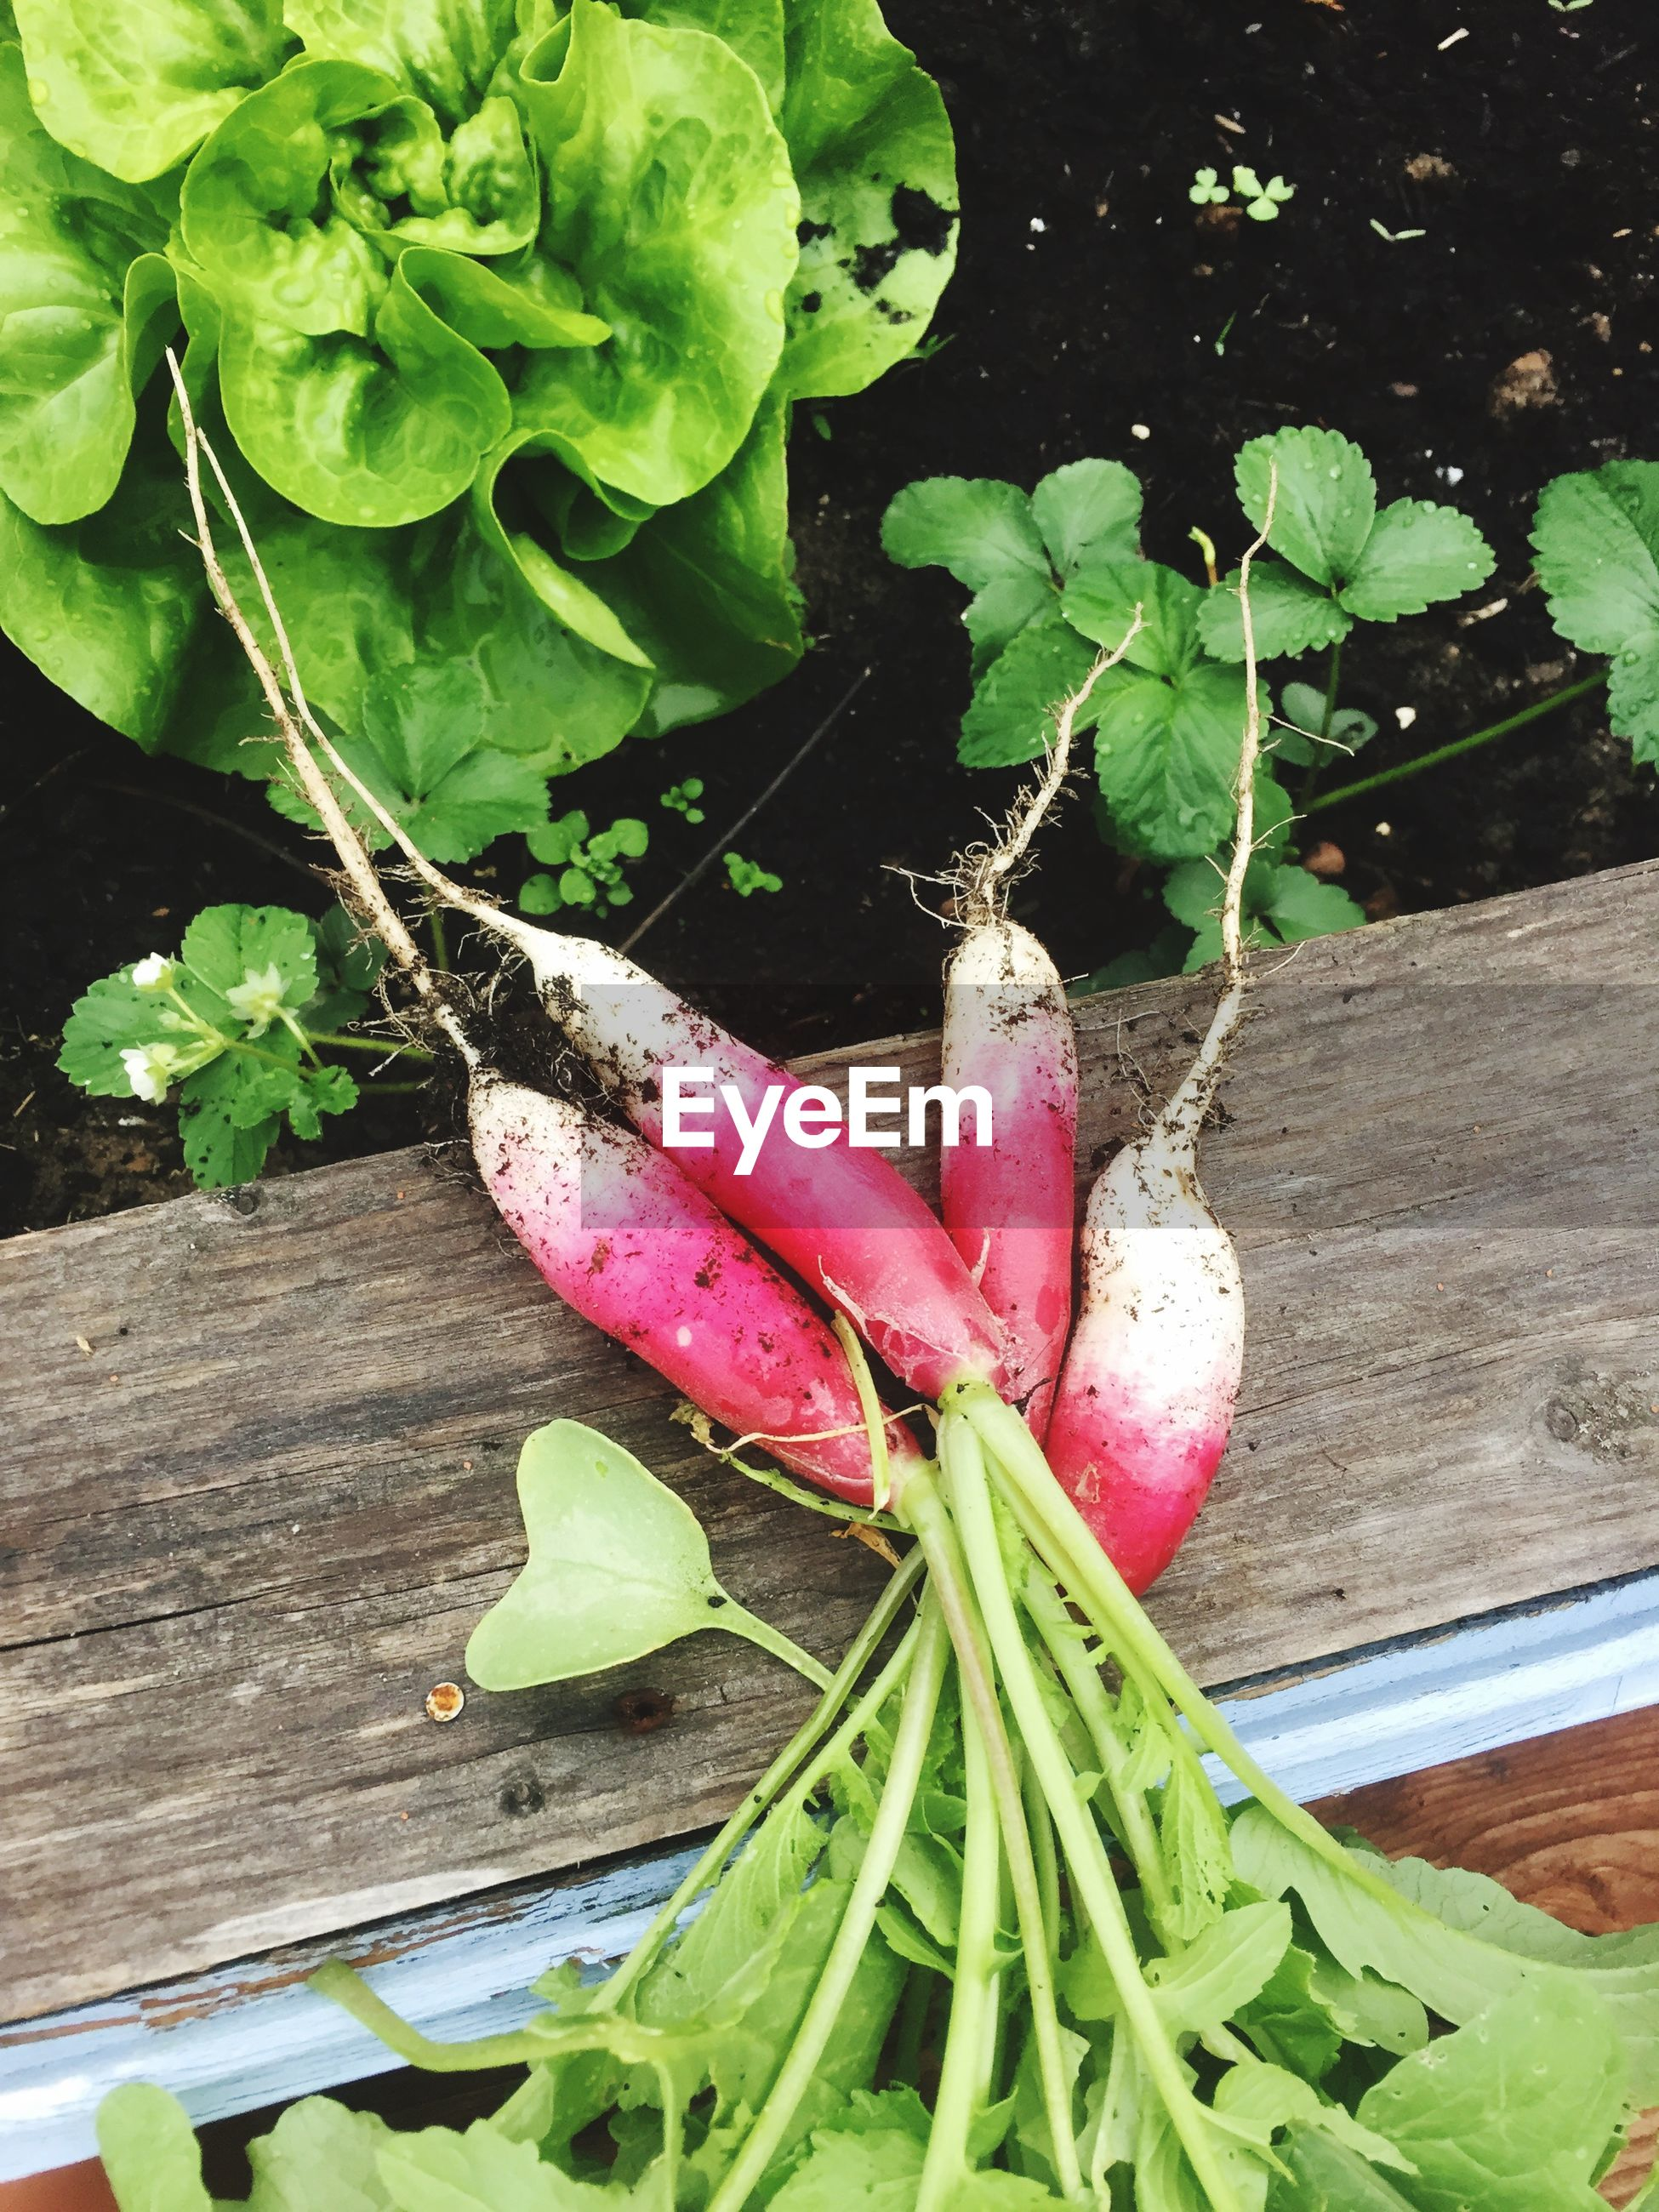 HIGH ANGLE VIEW OF VEGETABLES ON PLANT TABLE